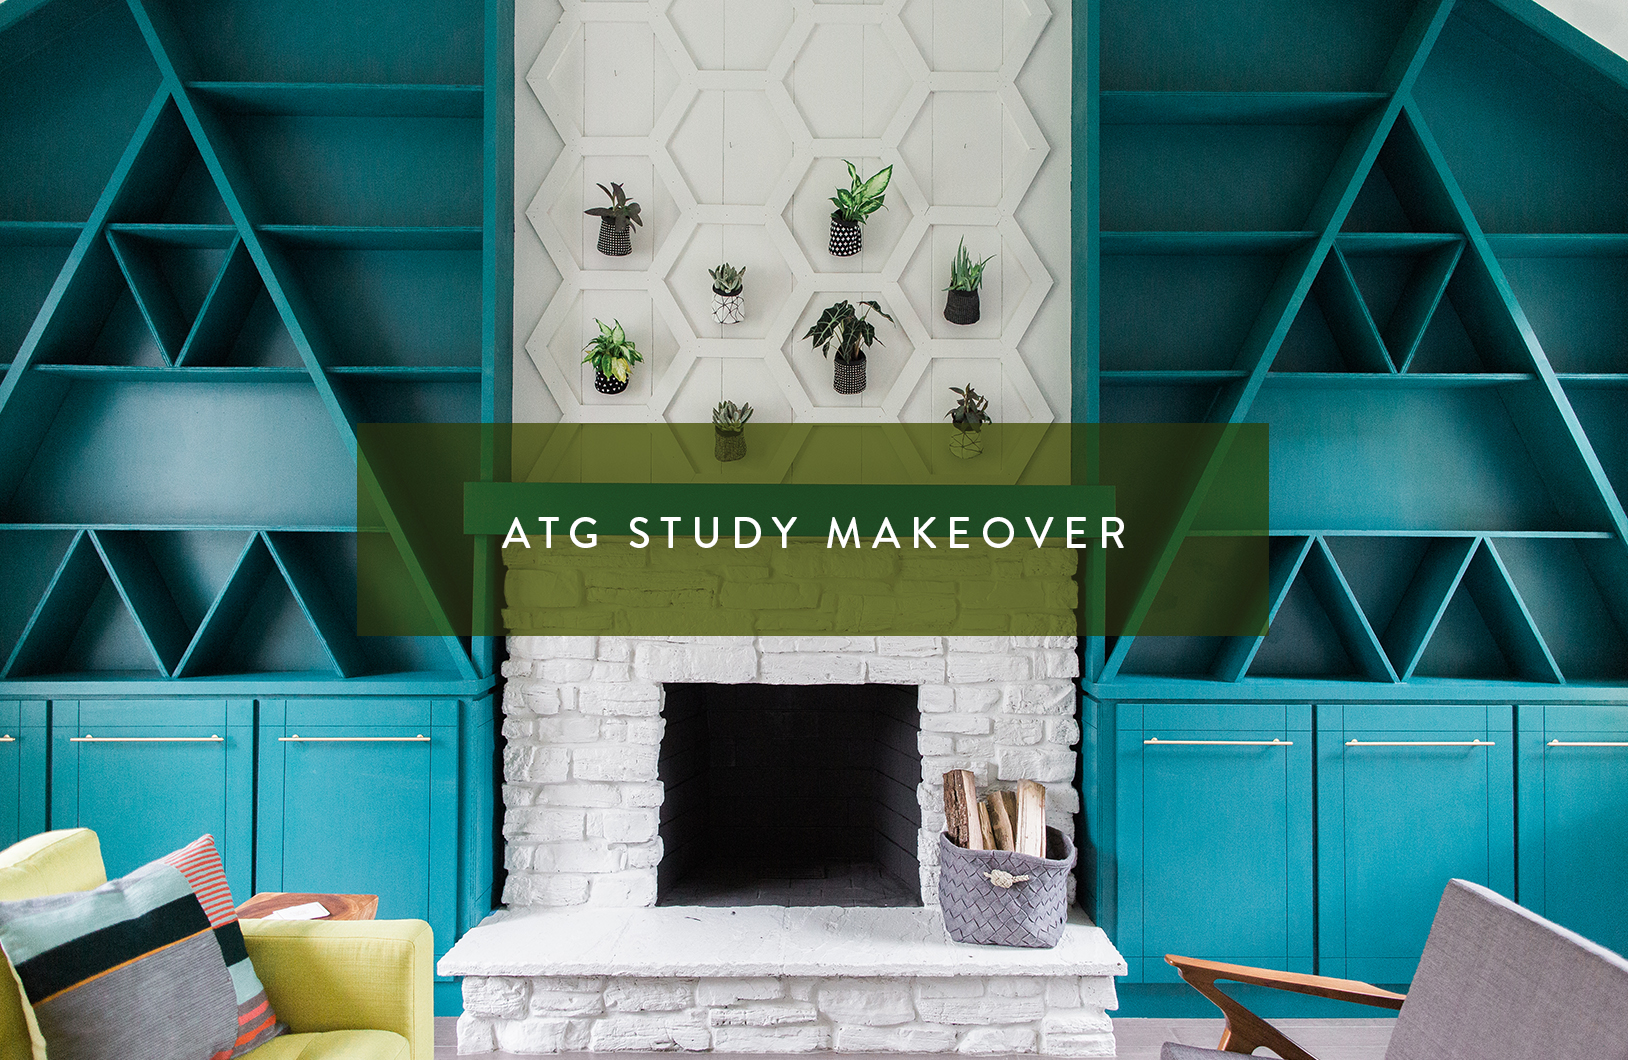 ATG Store Study Makeover